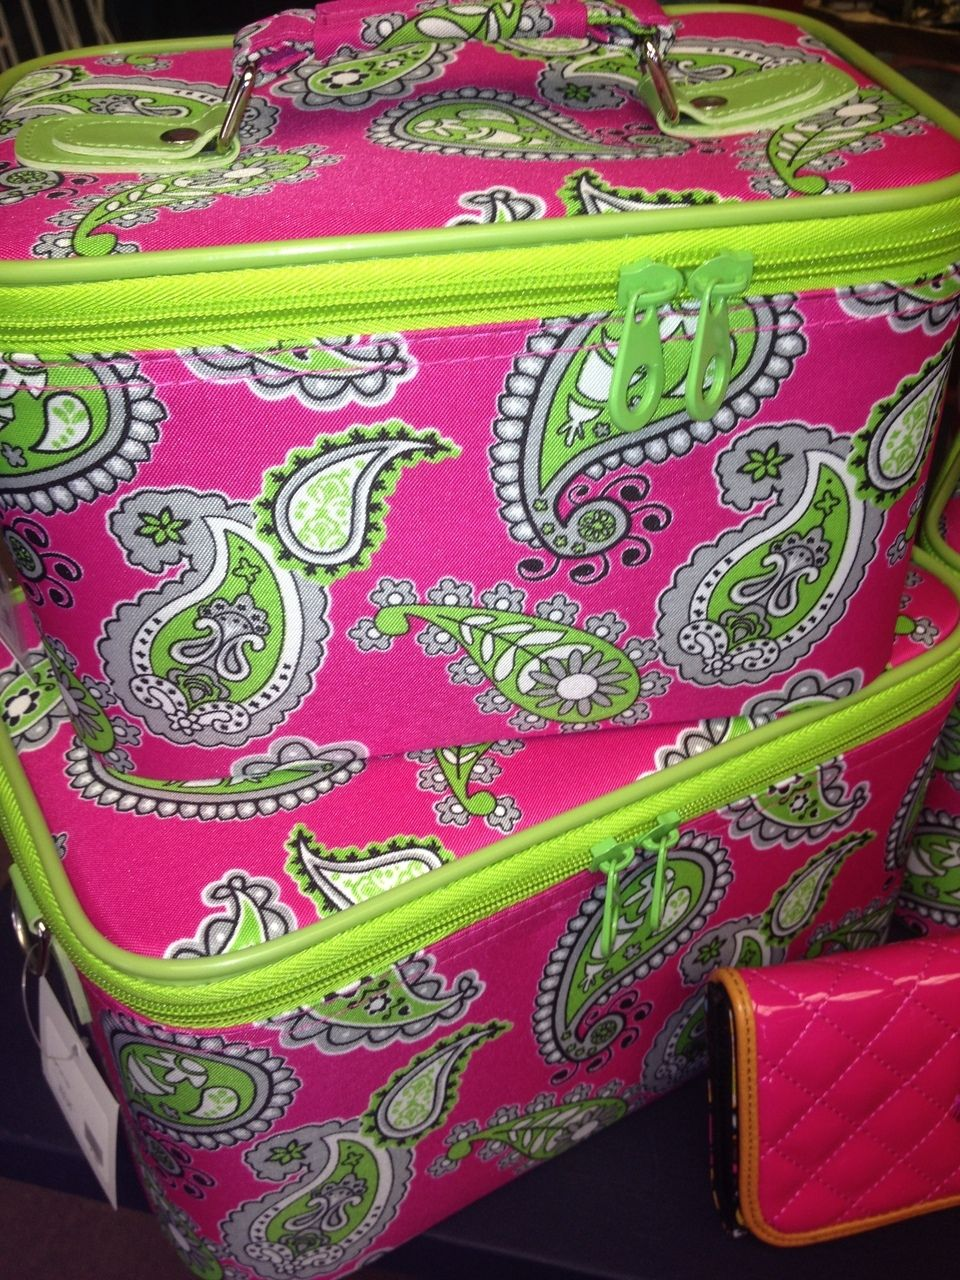 Tipsy Gypsy Boutique - Large Pink/Lime Train Case - TRAVEL CASE - MAKEUP CASE- PAISLEY - PINK AND LIME $21.95 (http://www.tipsygypsyboutique.net/large-pink-lime-train-case/)